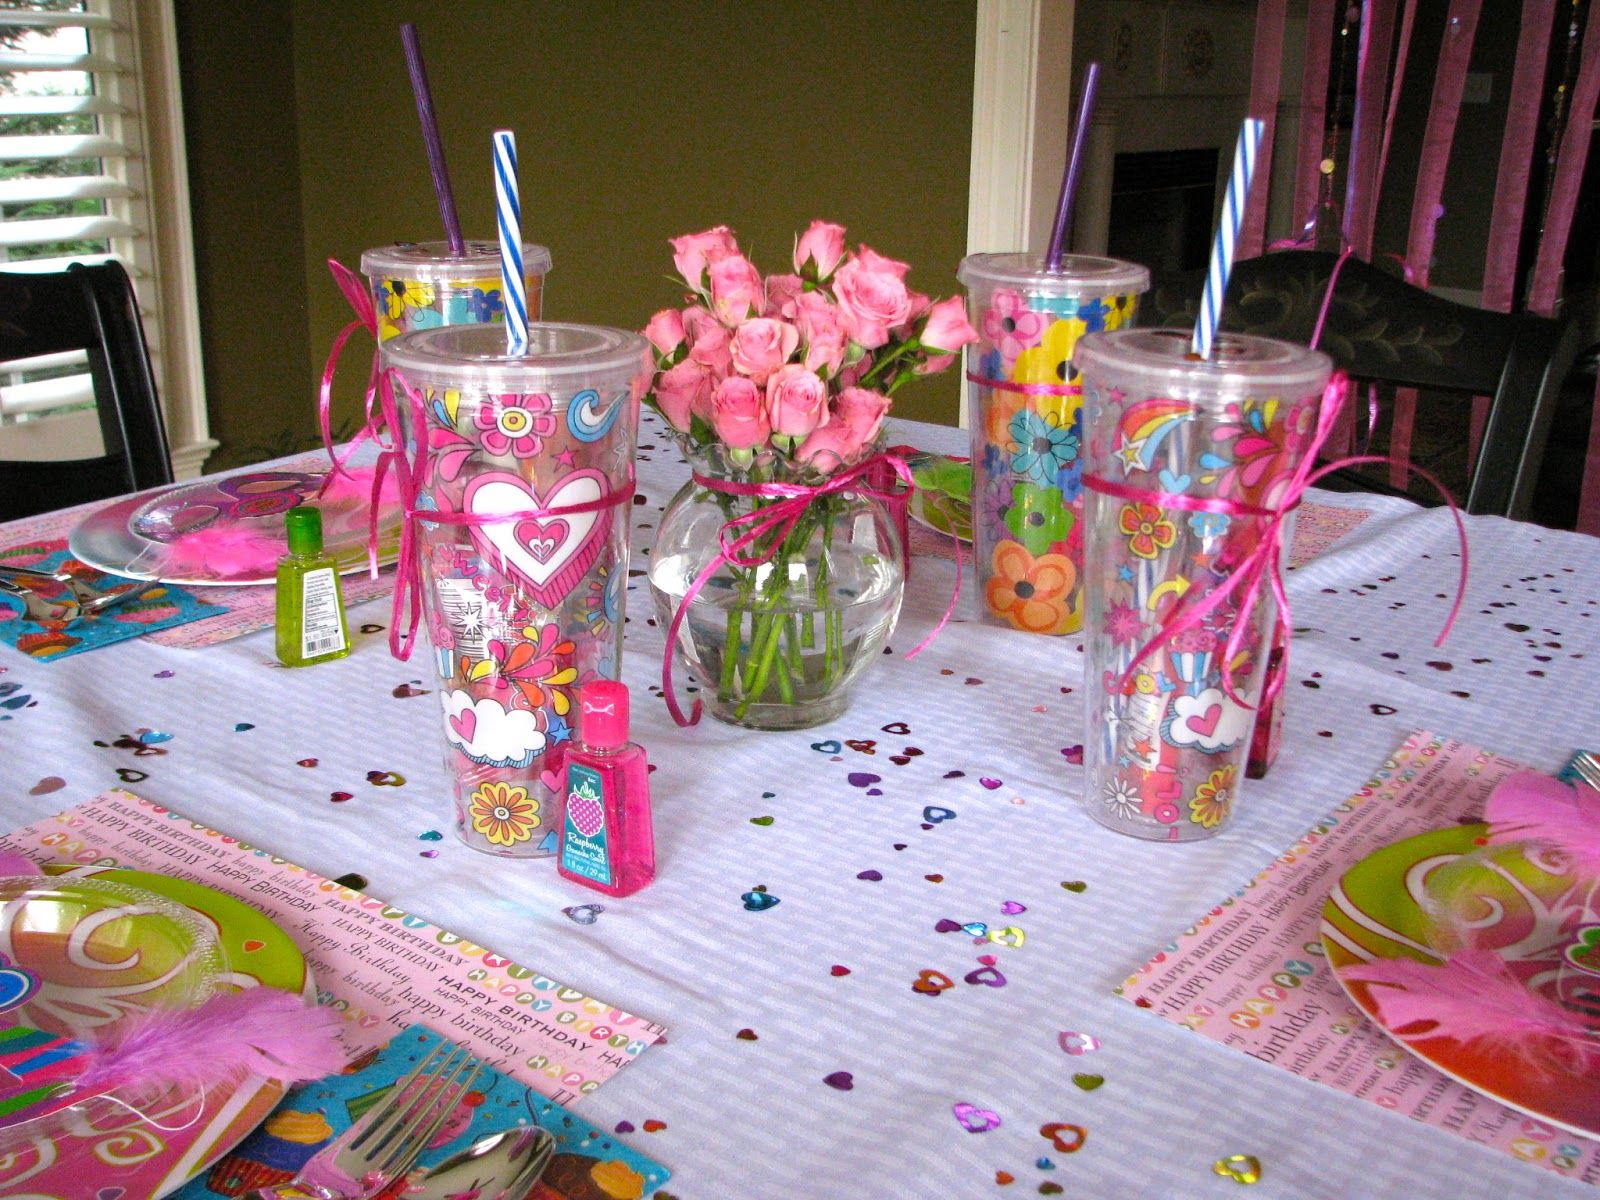 3 year old birthday party themes girl ; 6f7f9d0136ba3d09c8d1247d0a7c00fc